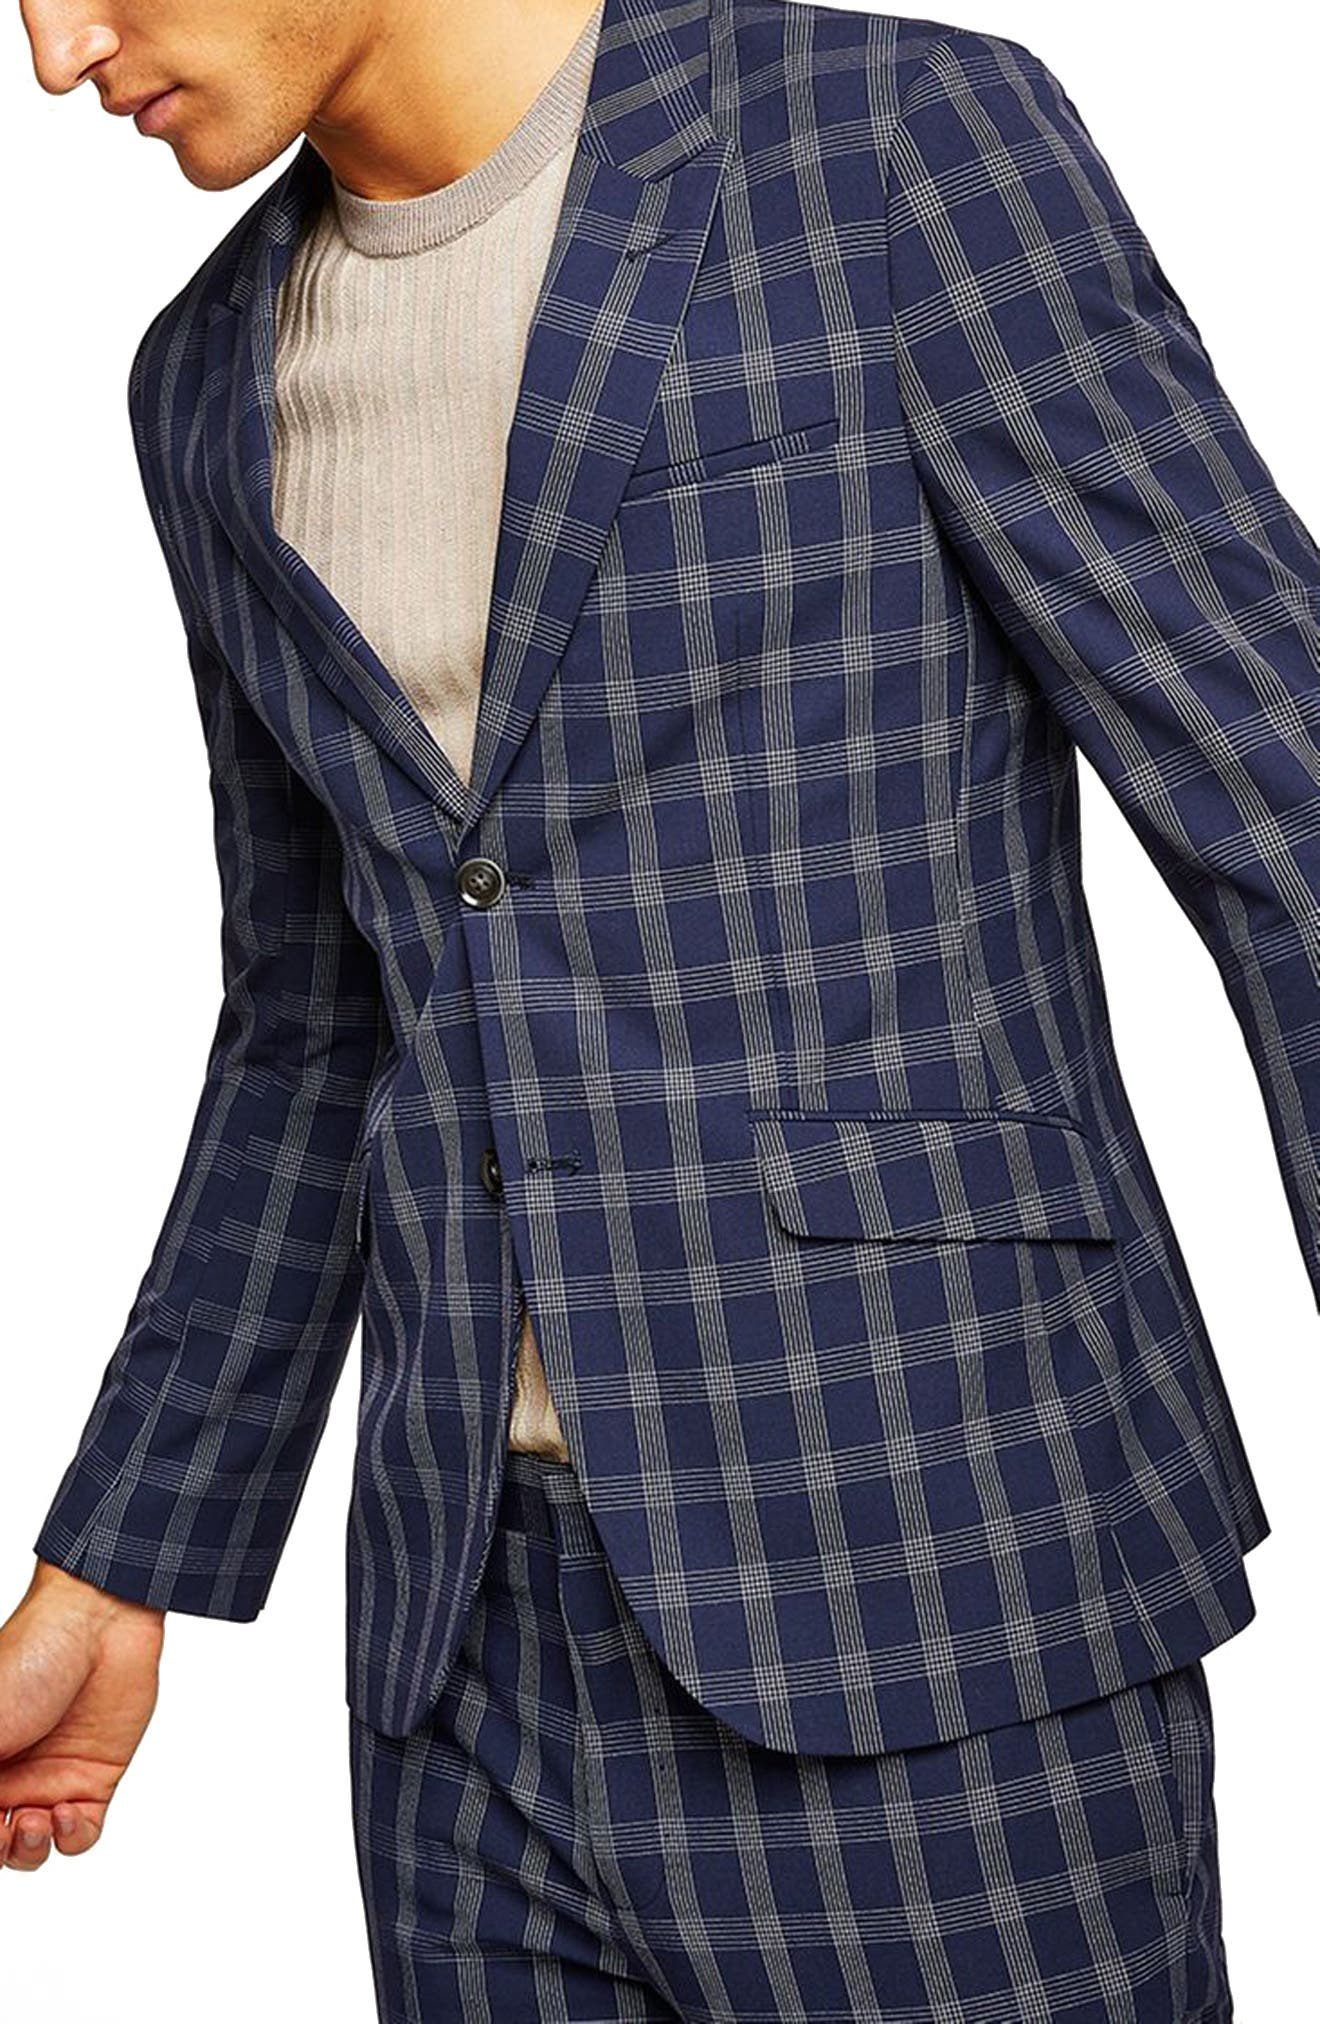 Muscle Fit Check Suit Jacket,                             Main thumbnail 1, color,                             NAVY BLUE MULTI